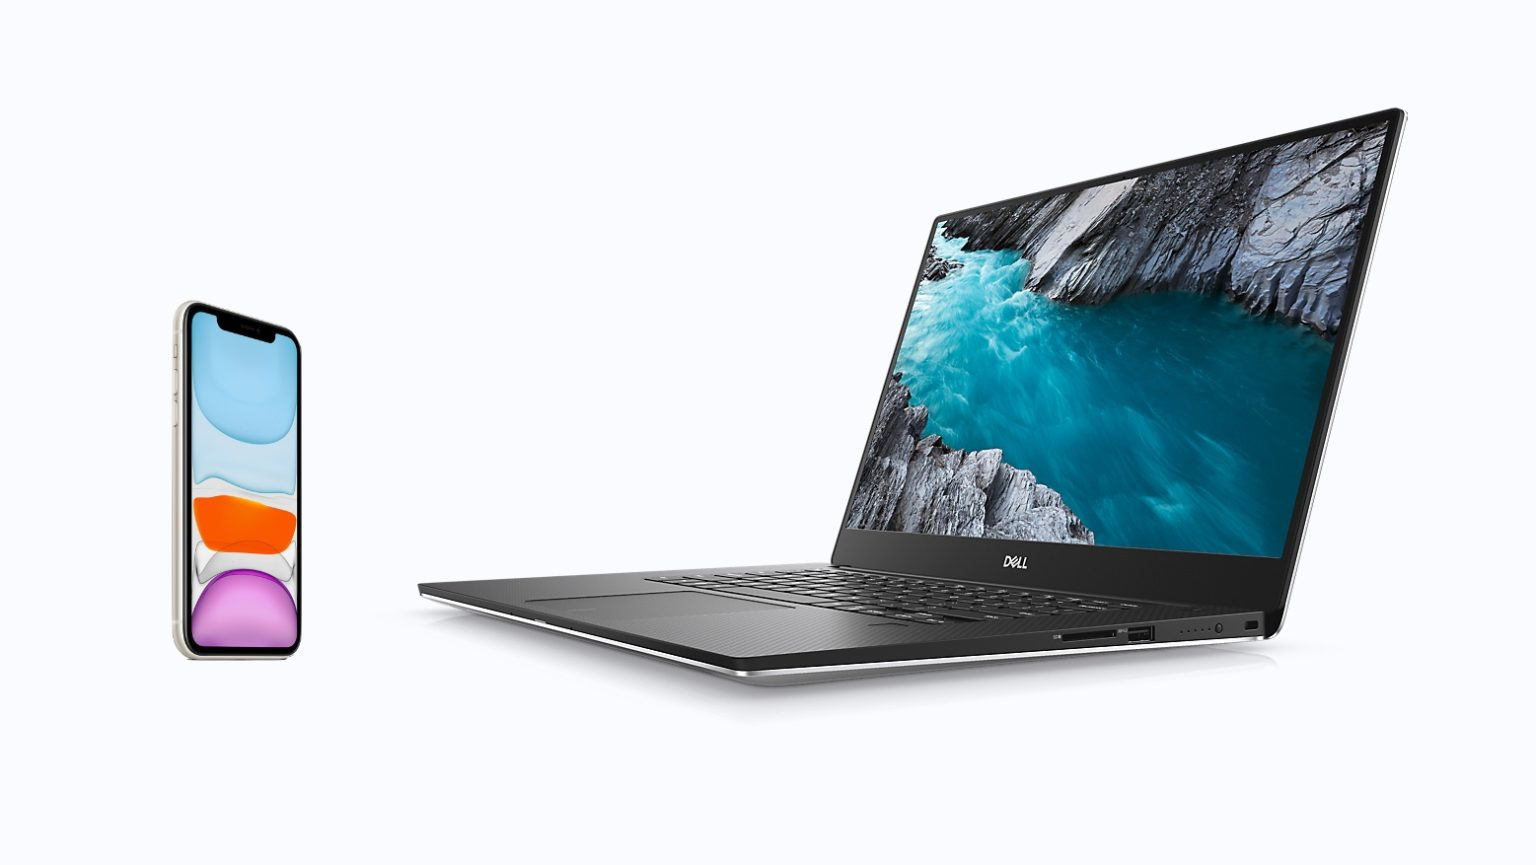 Your iPhone and laptop can be friends with Dell Mobile Connect